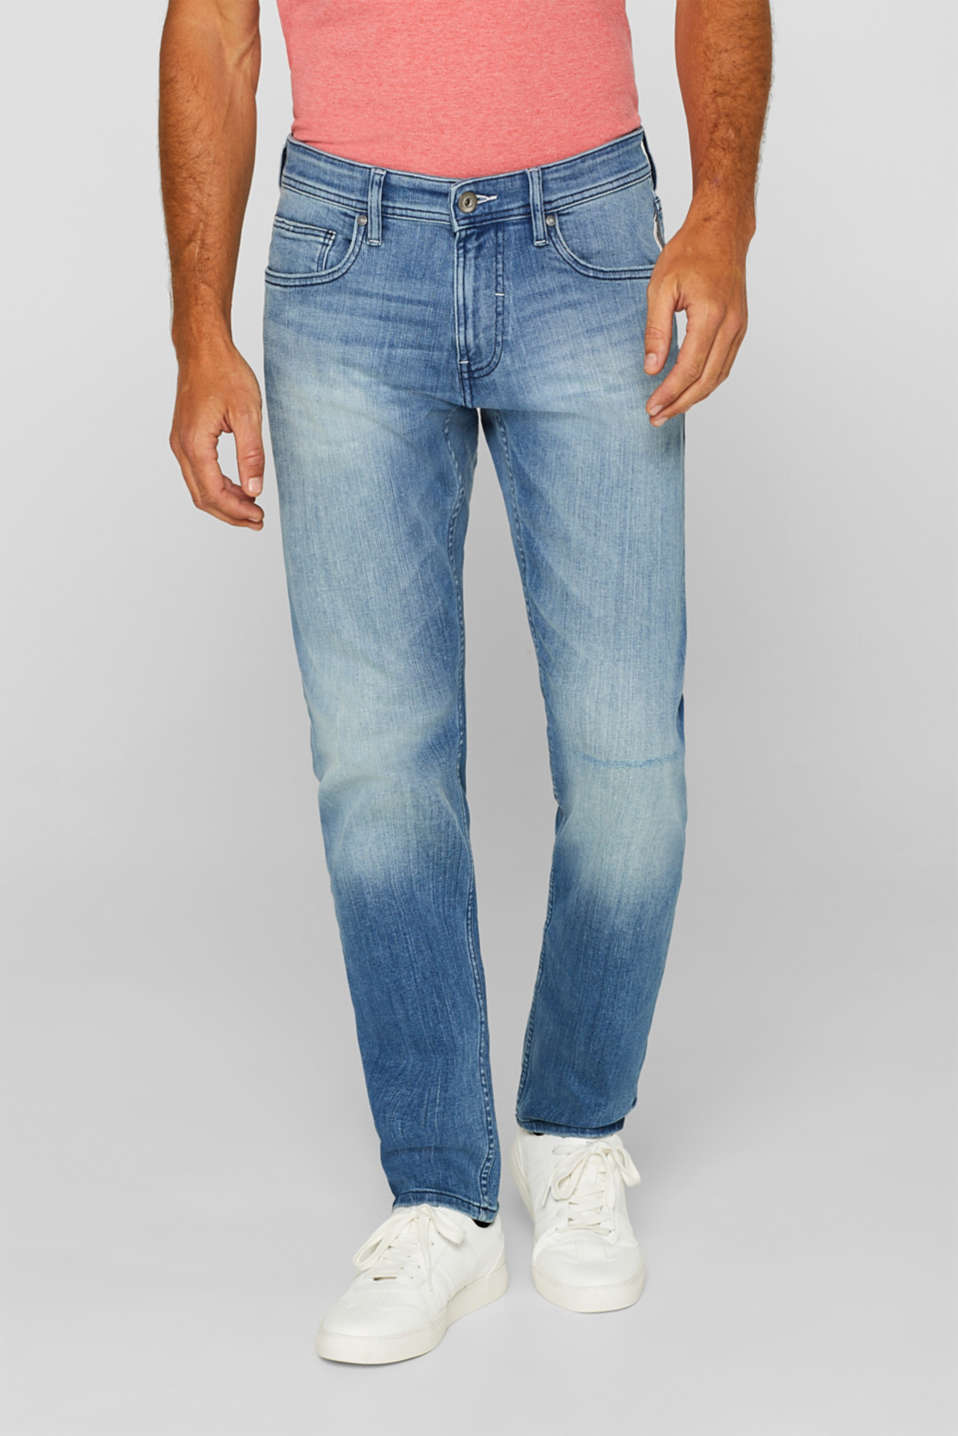 edc - Vintage-look stretch jeans